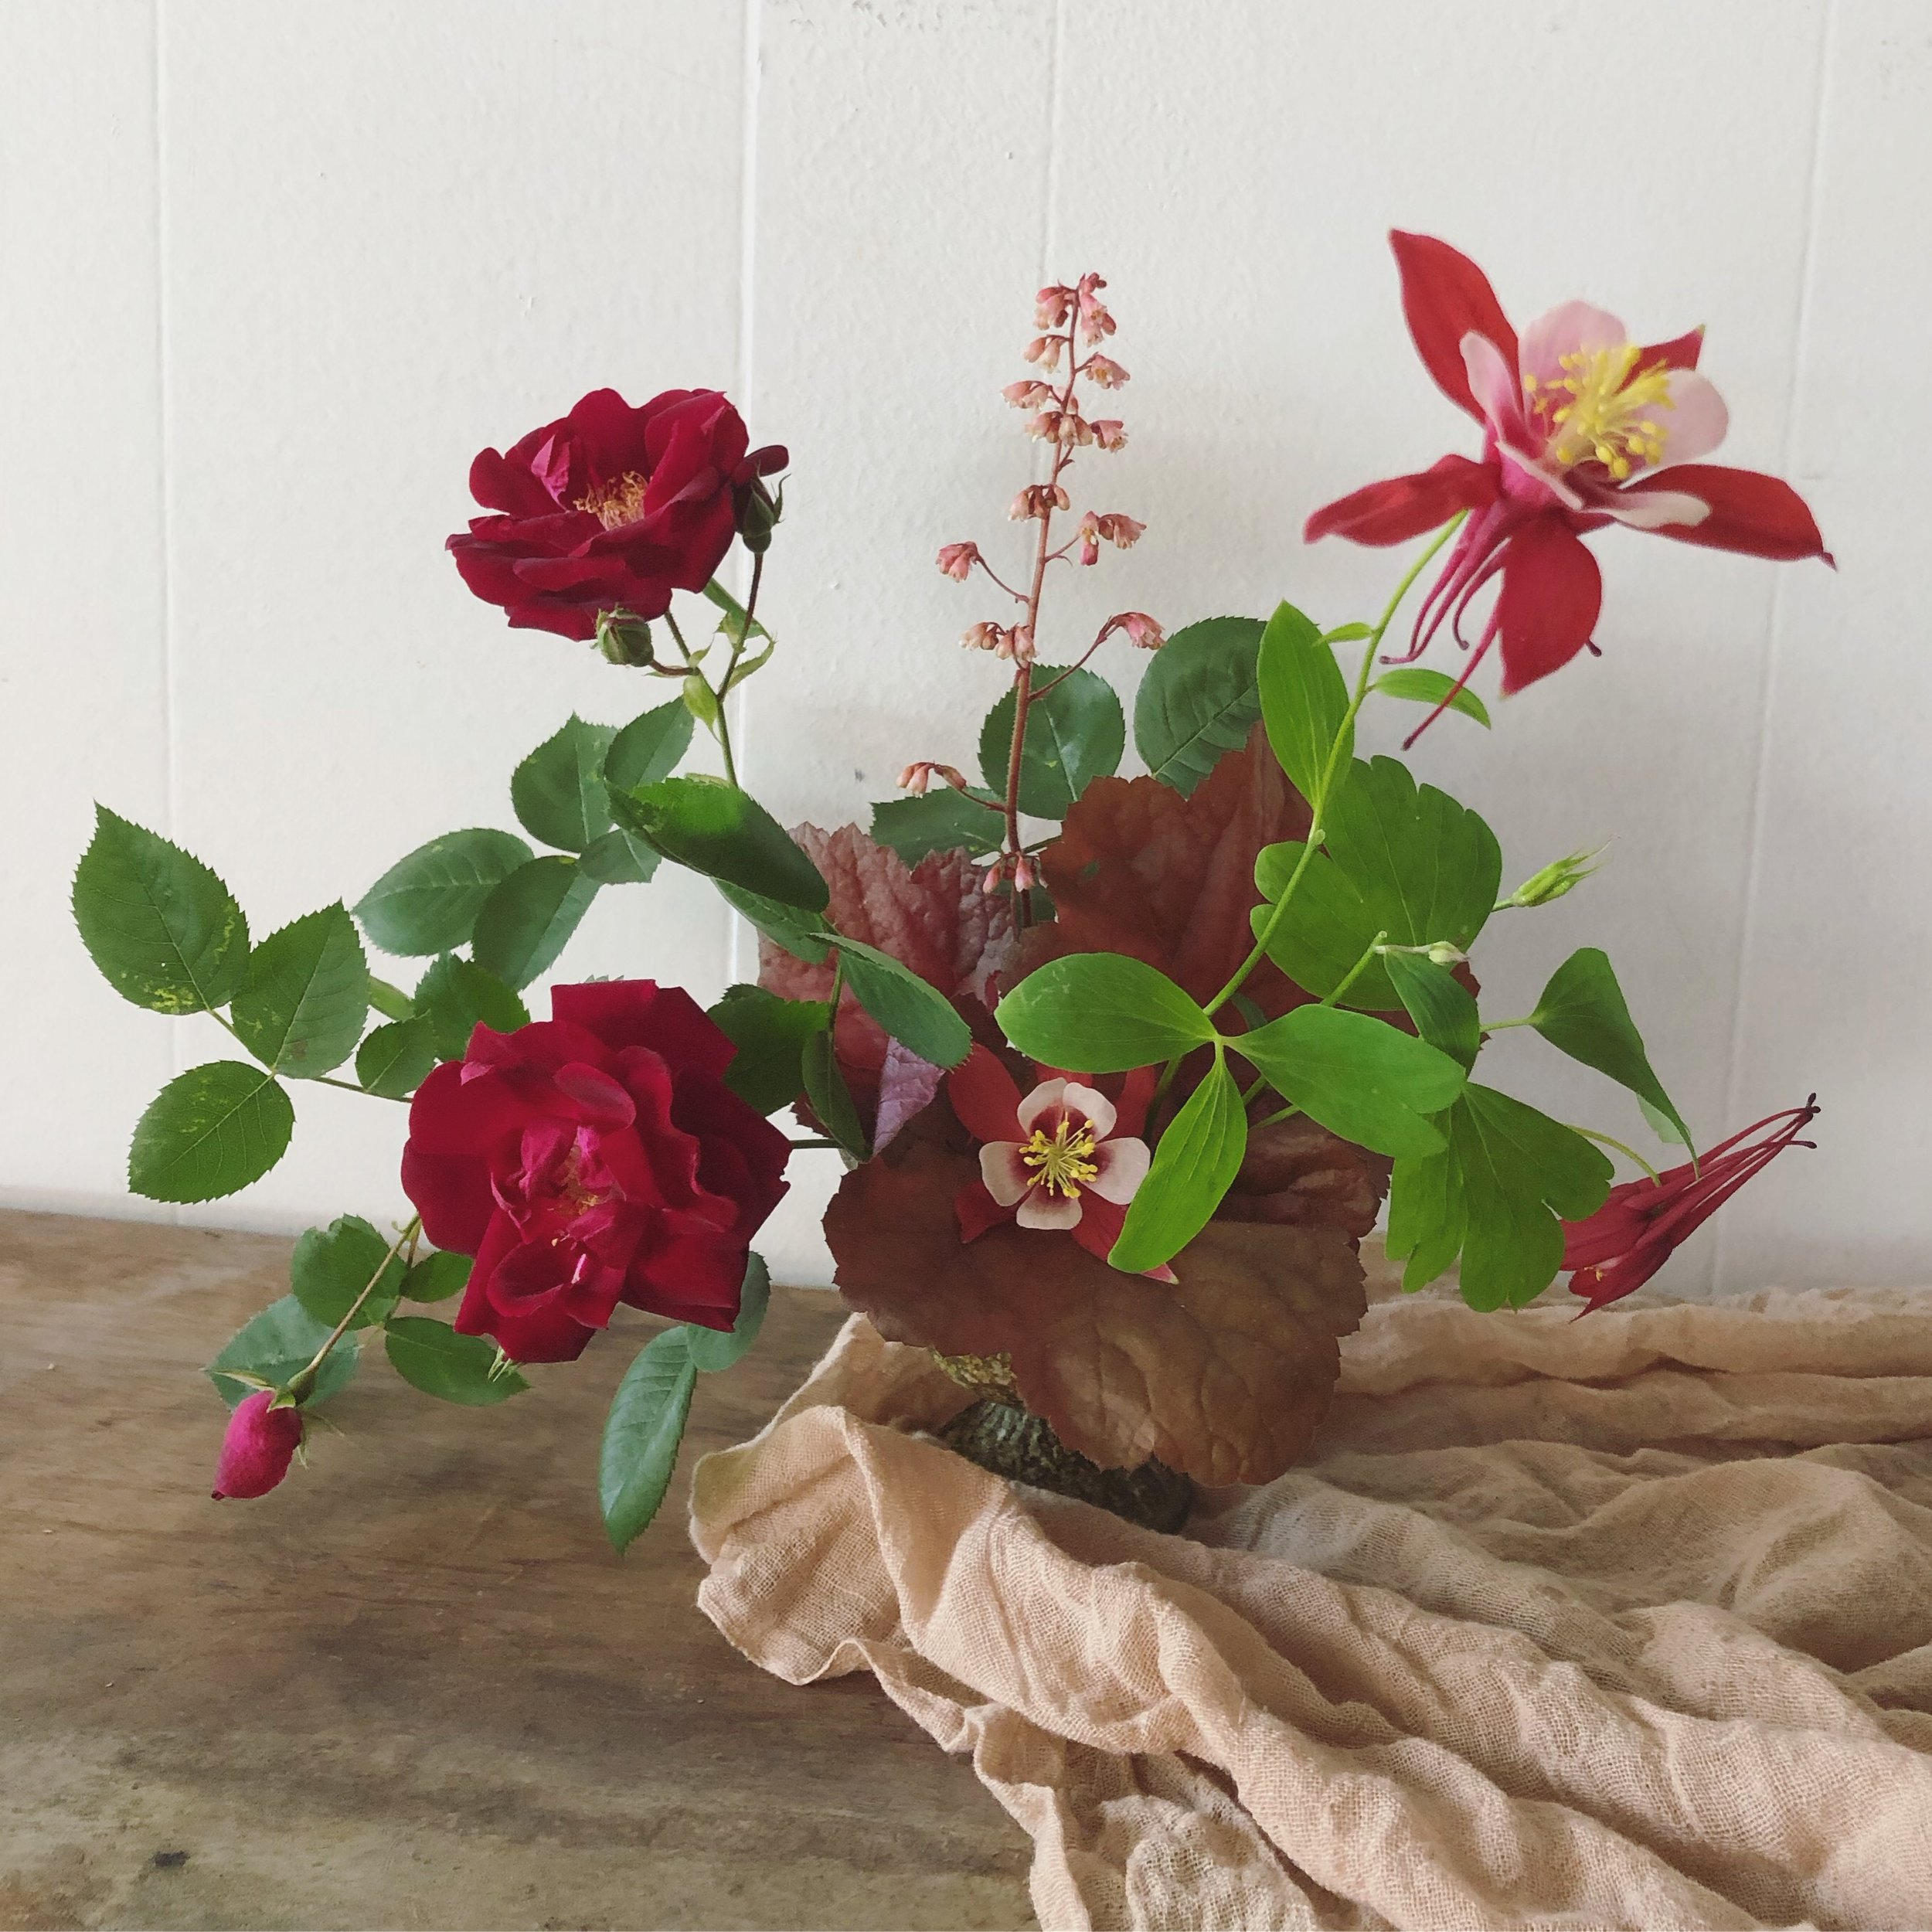 About - Janessa Walter is the creative force behind Gold Dust Floral. Her love of flowers spills out of every arrangement.